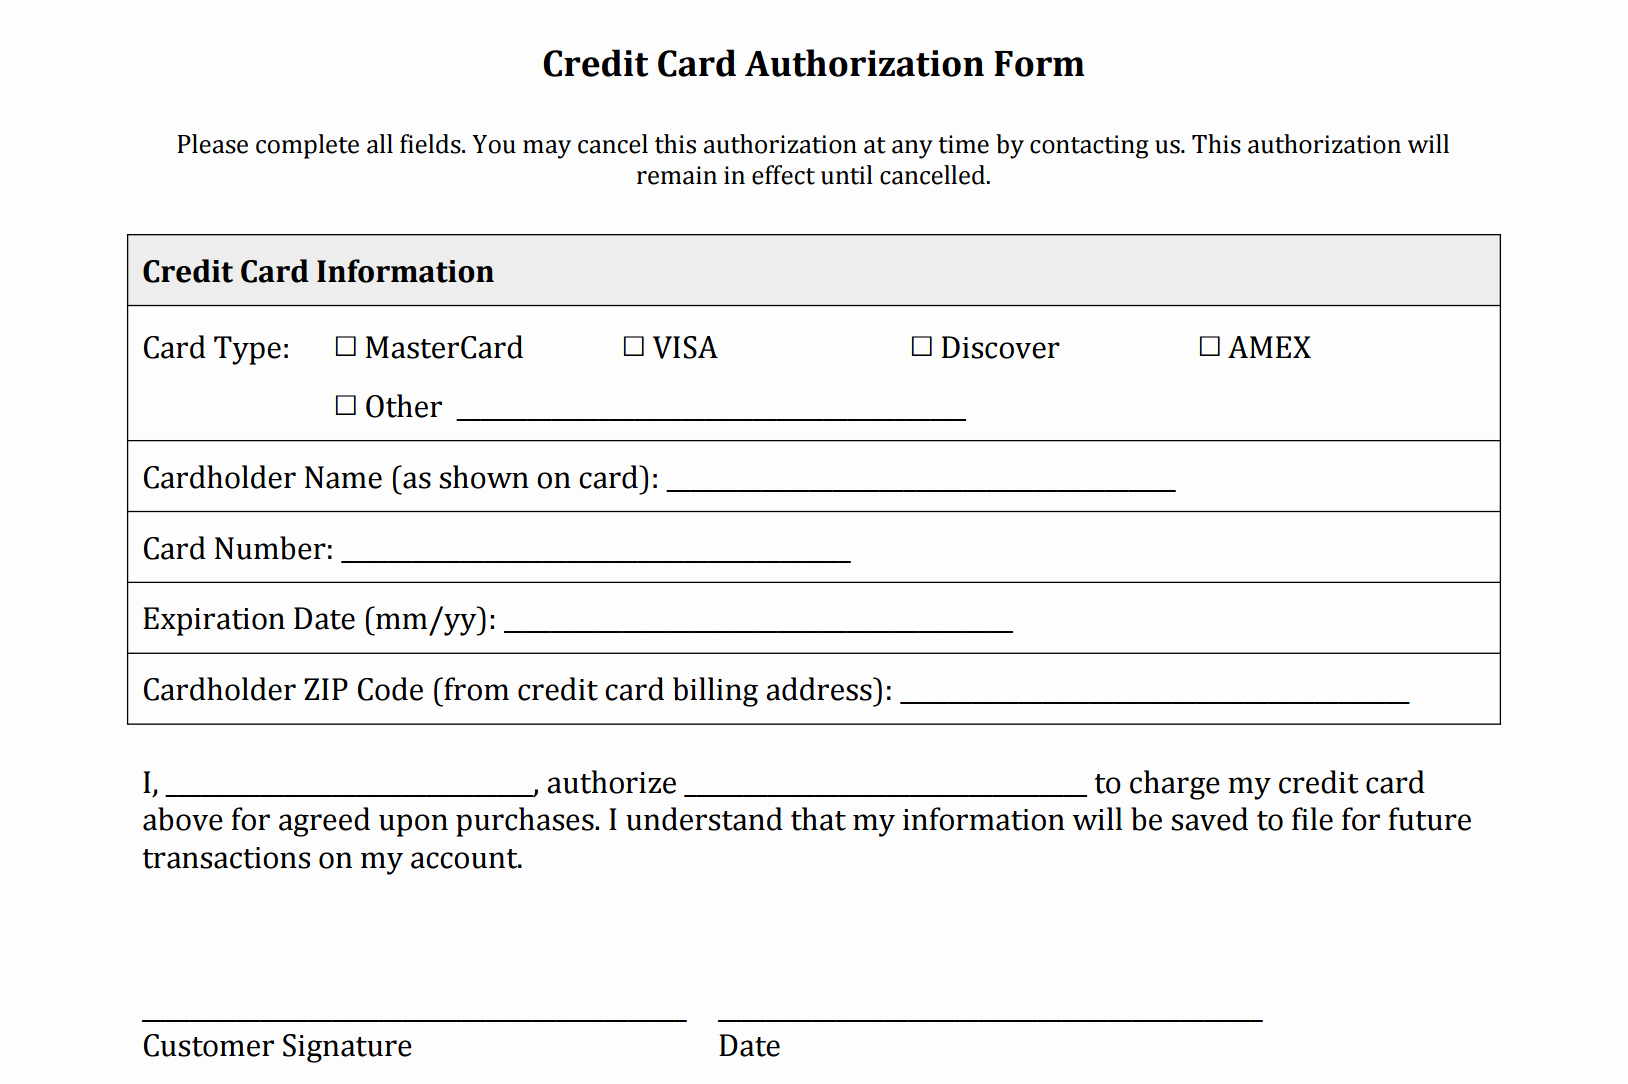 Repair Authorization form Template Lovely Credit Card Authorization form Templates [download]